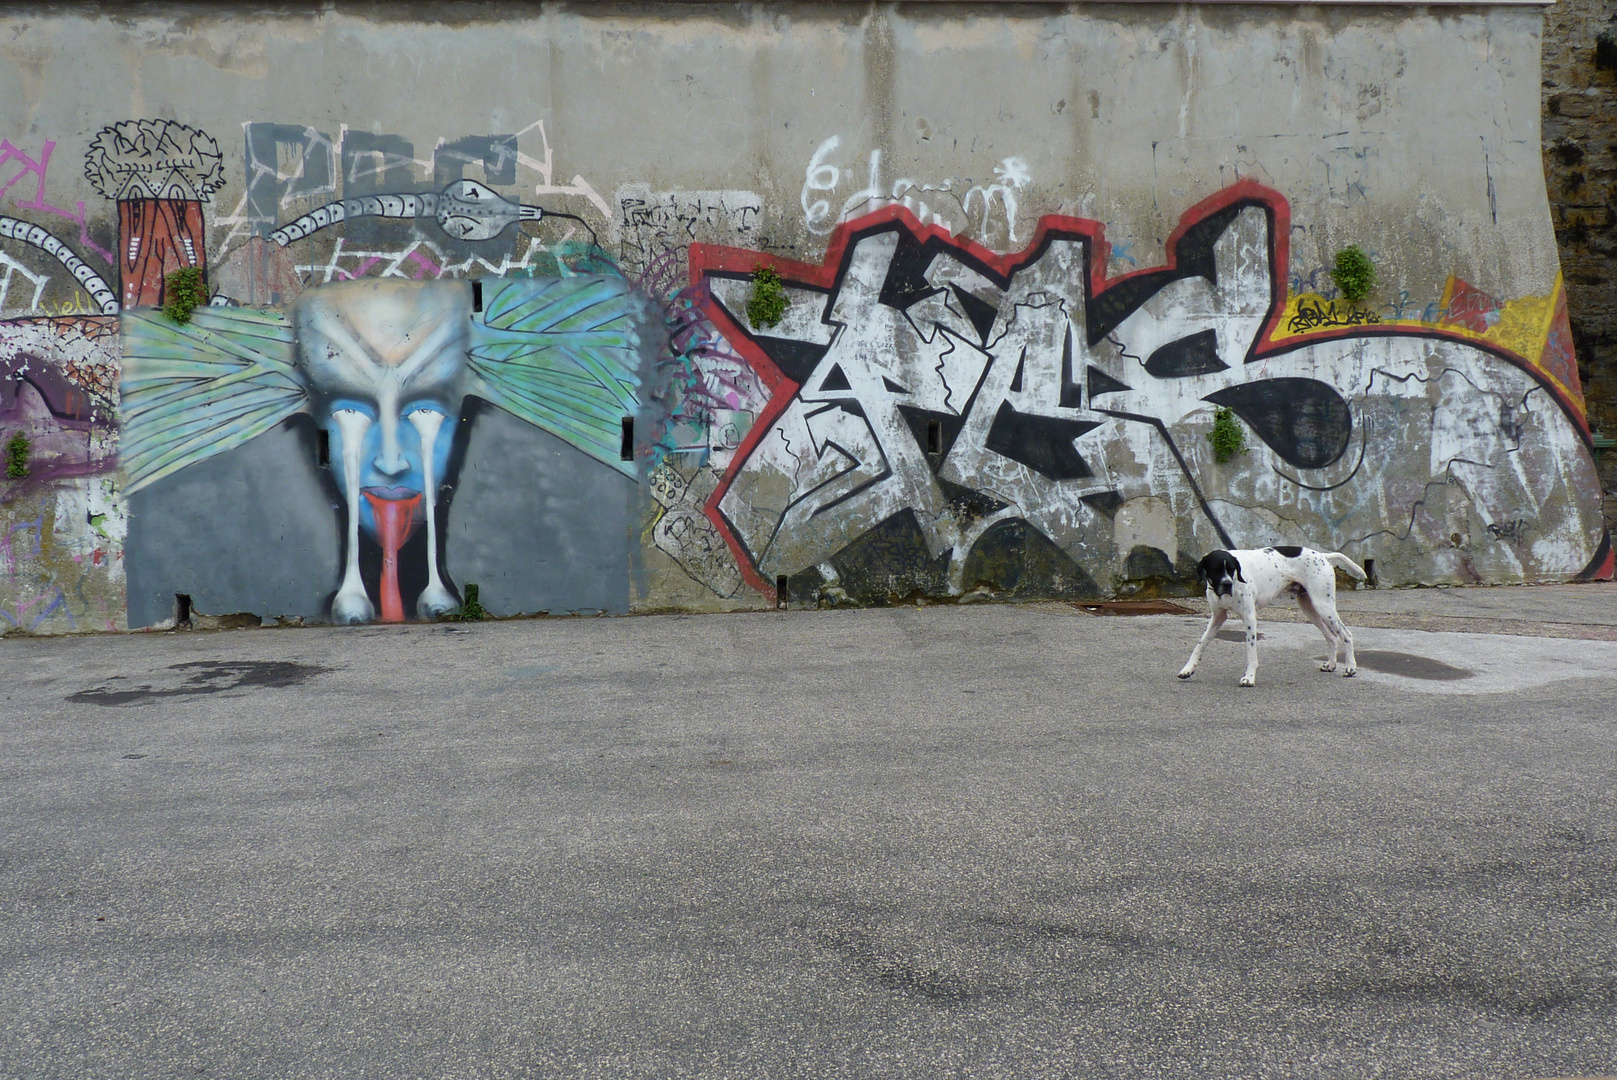 a dog and gravity - sorry, i meant graffiti